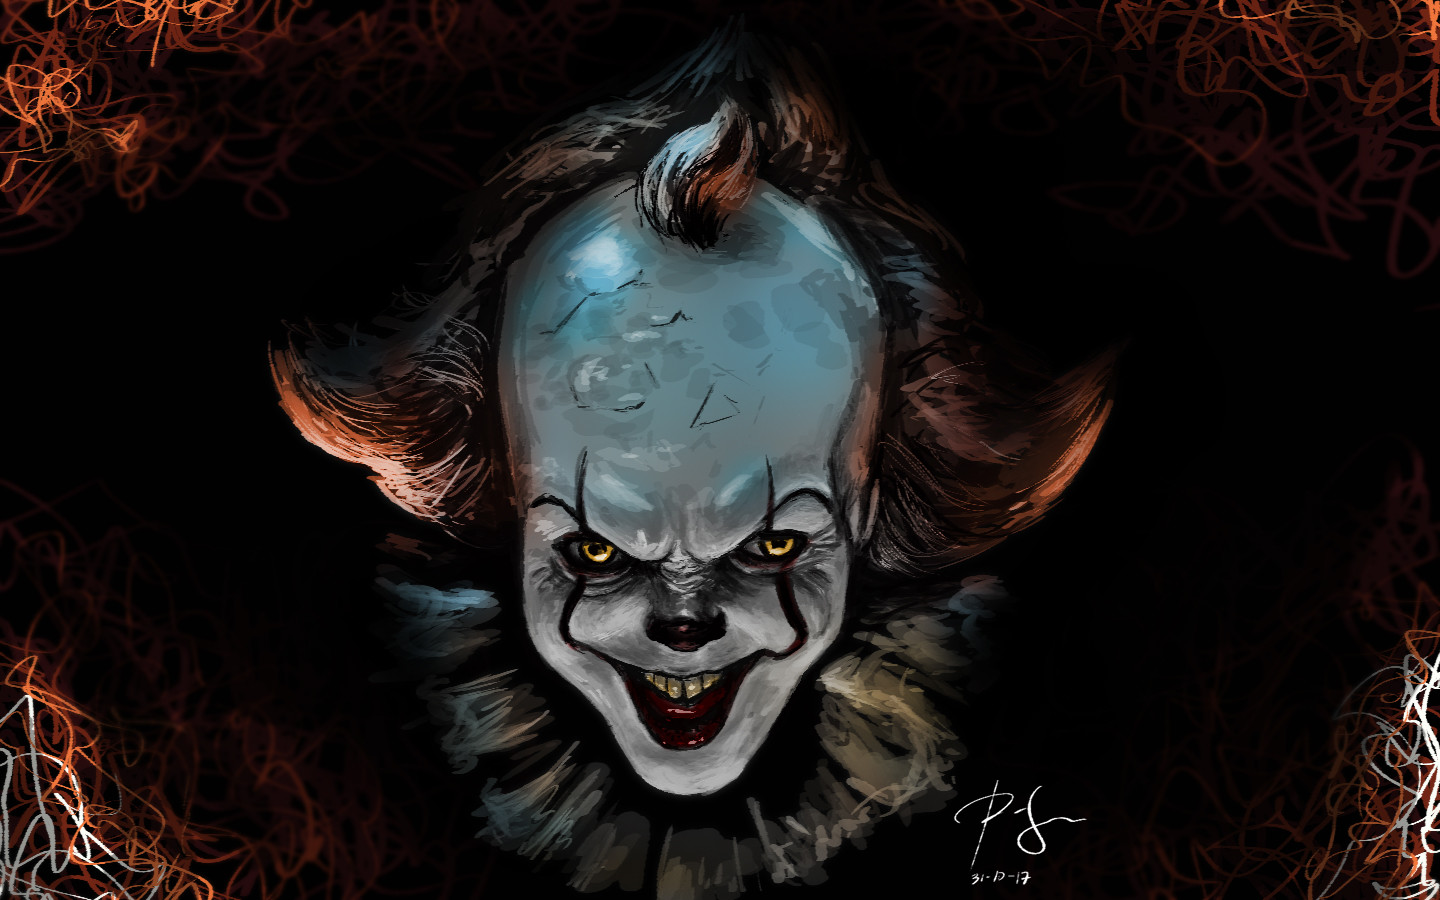 268a699fc6 Pennywise the Dancing Clown Final image. WIP. Ray Joshoa Dulay